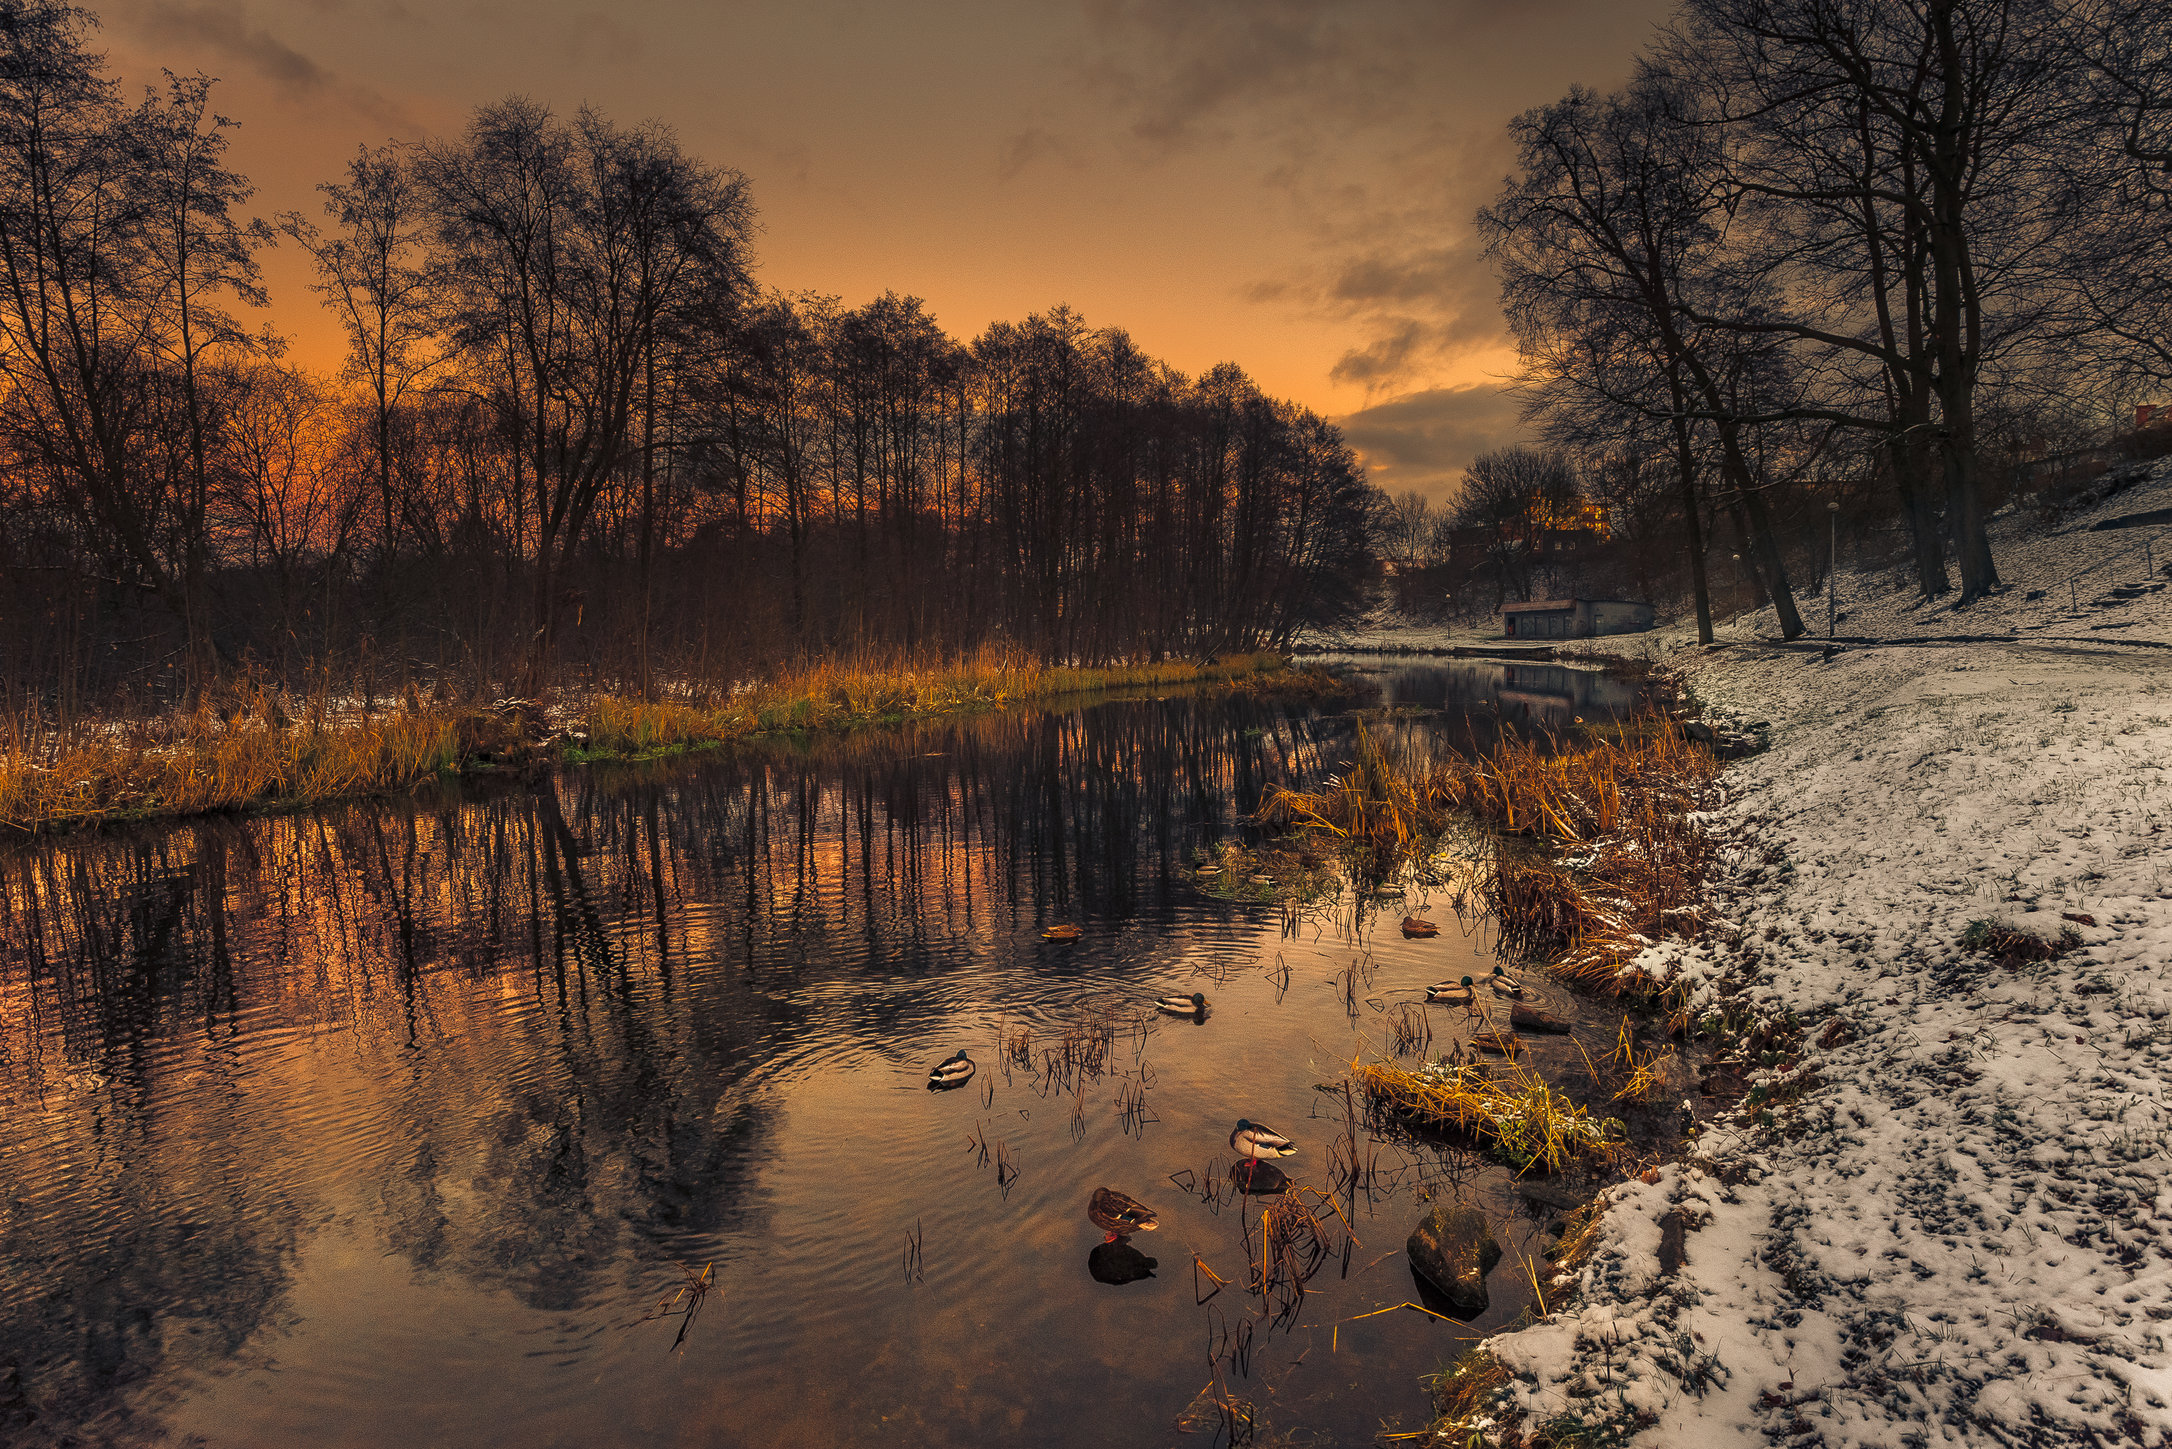 Sunset Over The River Drawa-MASTER COPY.jpg